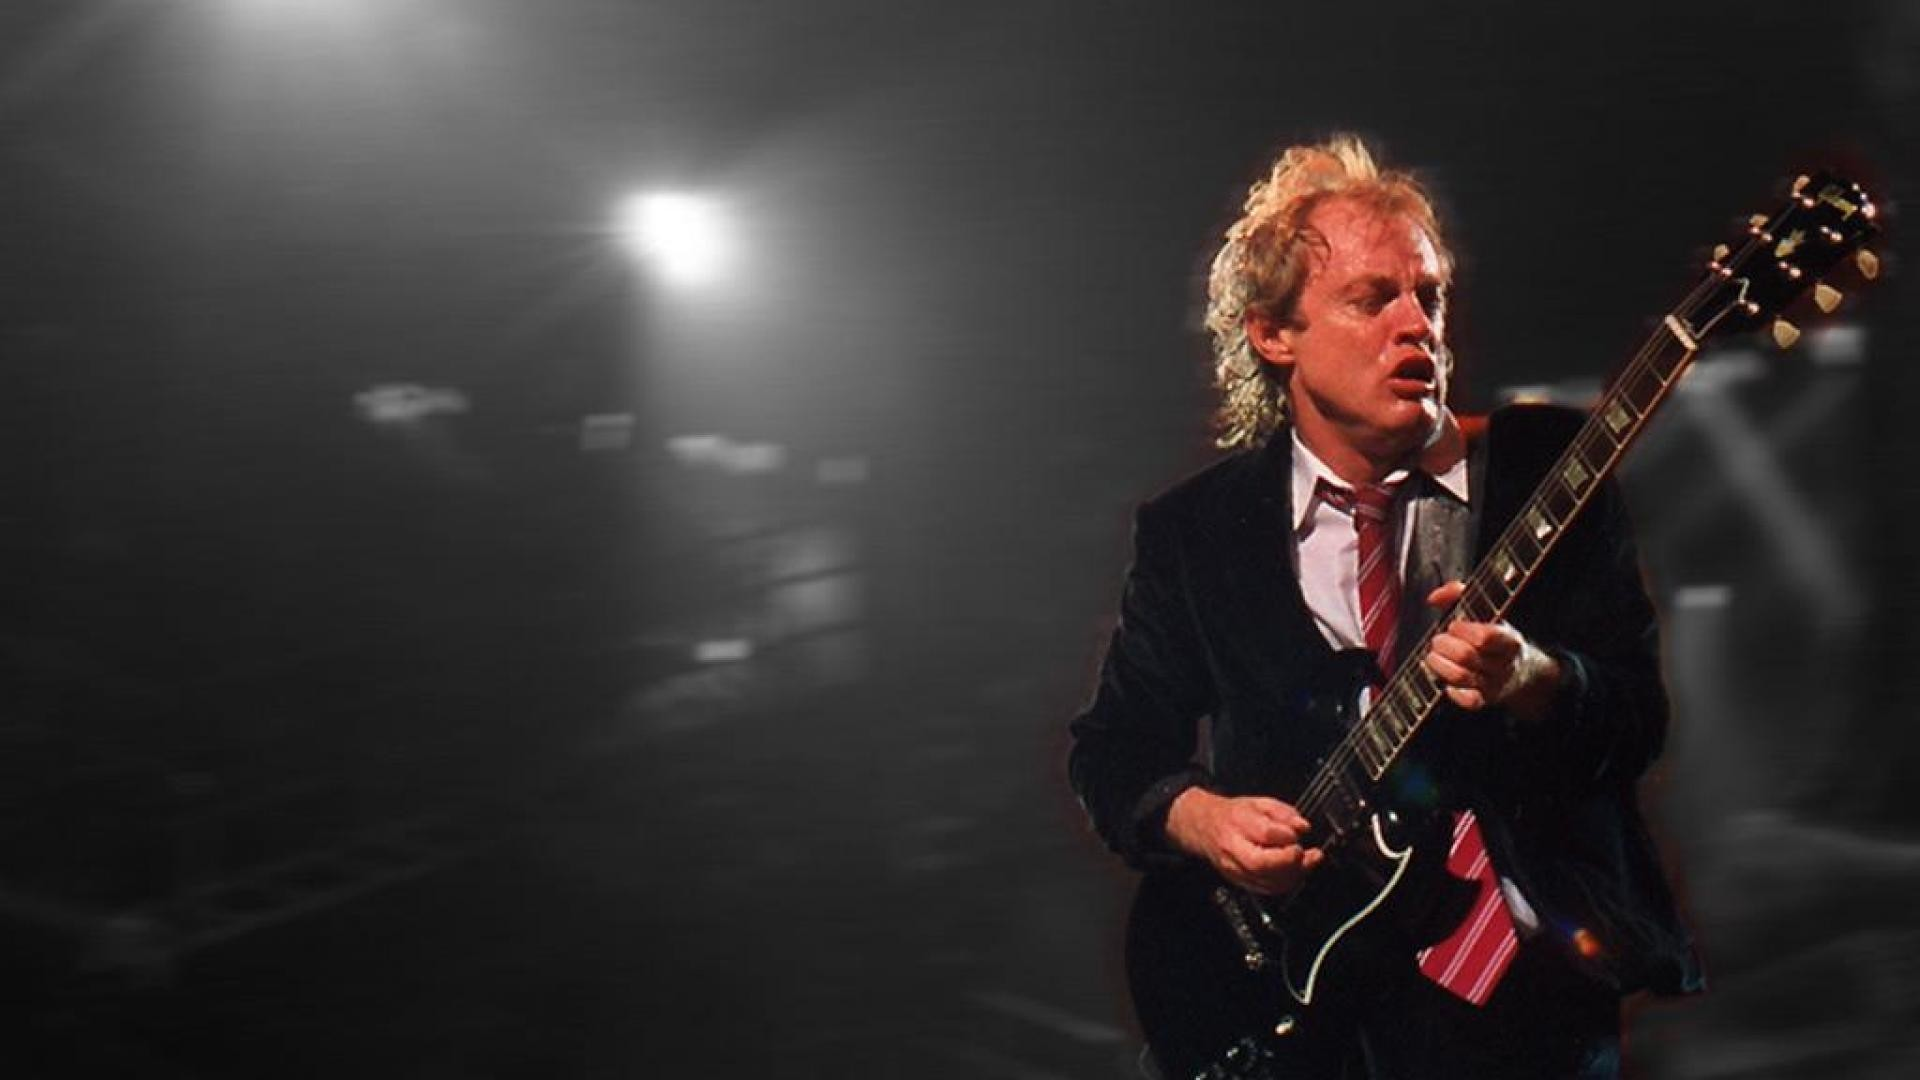 AC DC ANGUS YOUNG WALLPAPER – (#34551) – HD Wallpapers .